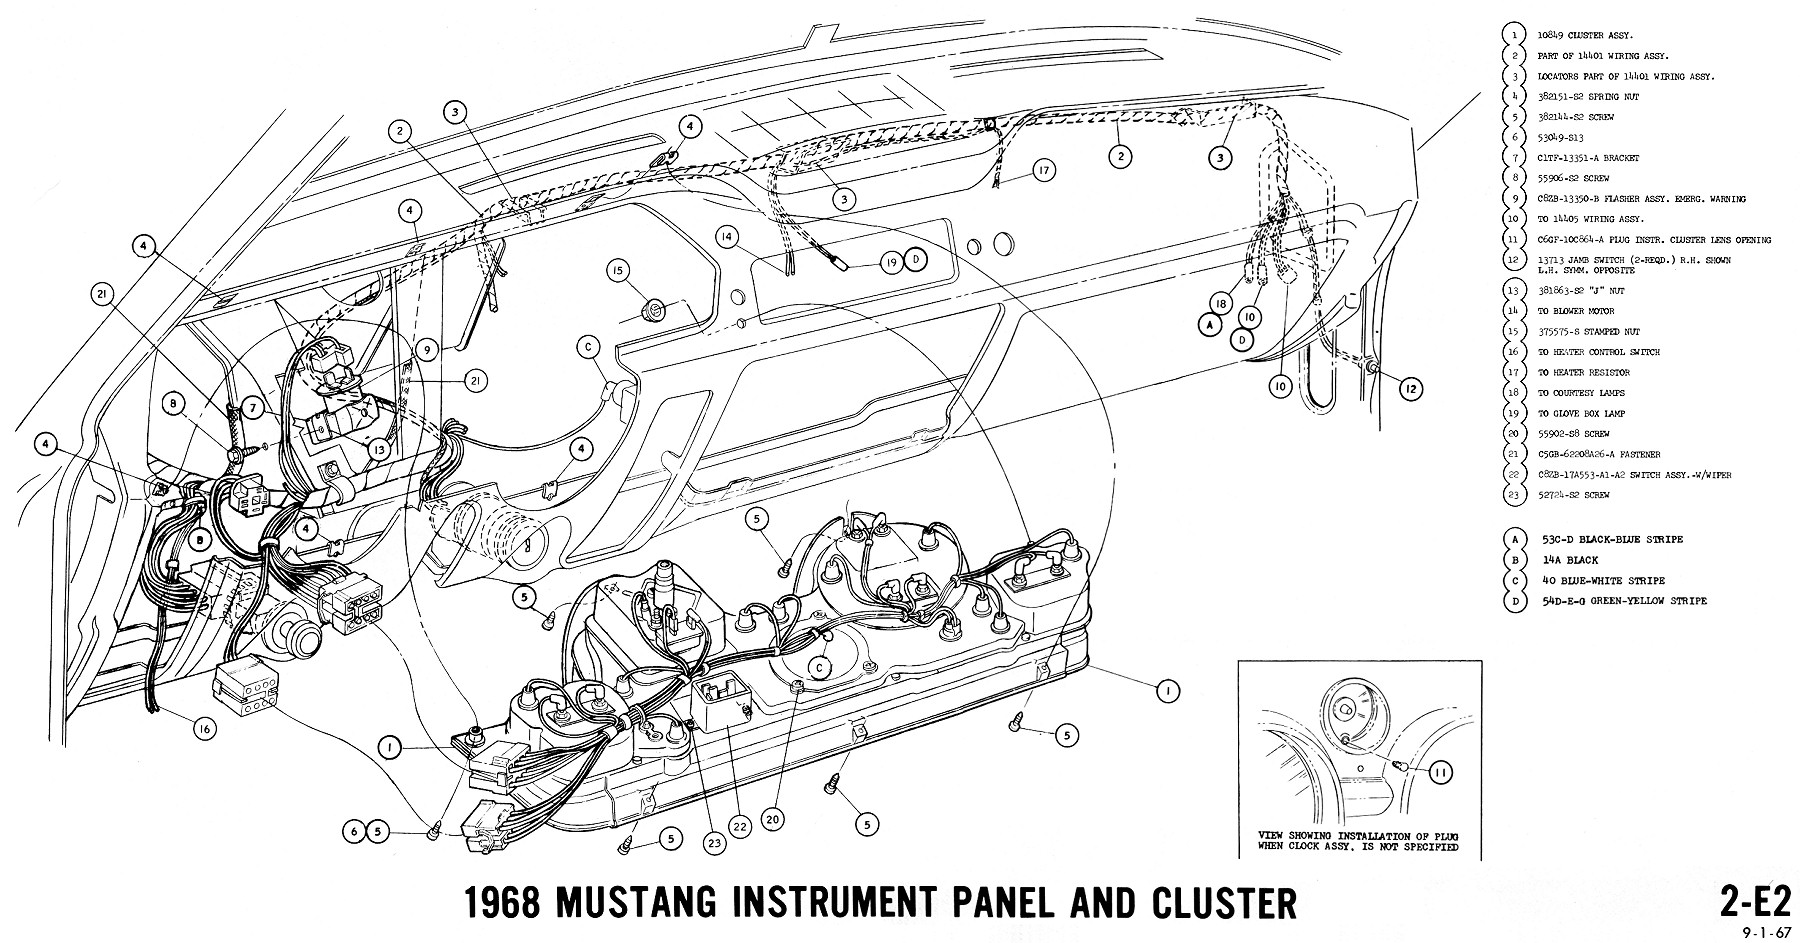 1968 Mustang Wiring Diagram Vacuum Schematics moreover 2001 Kia Sportage Charcoal Canister Location together with Hyundai Accent 1997 Circuit System also 3swiq 98 Chevy Astro Power Door Locks Switches Engage The Accy Relay additionally 2002 Lincoln Ls Interior Fuse Panel. on kia sportage electrical diagram